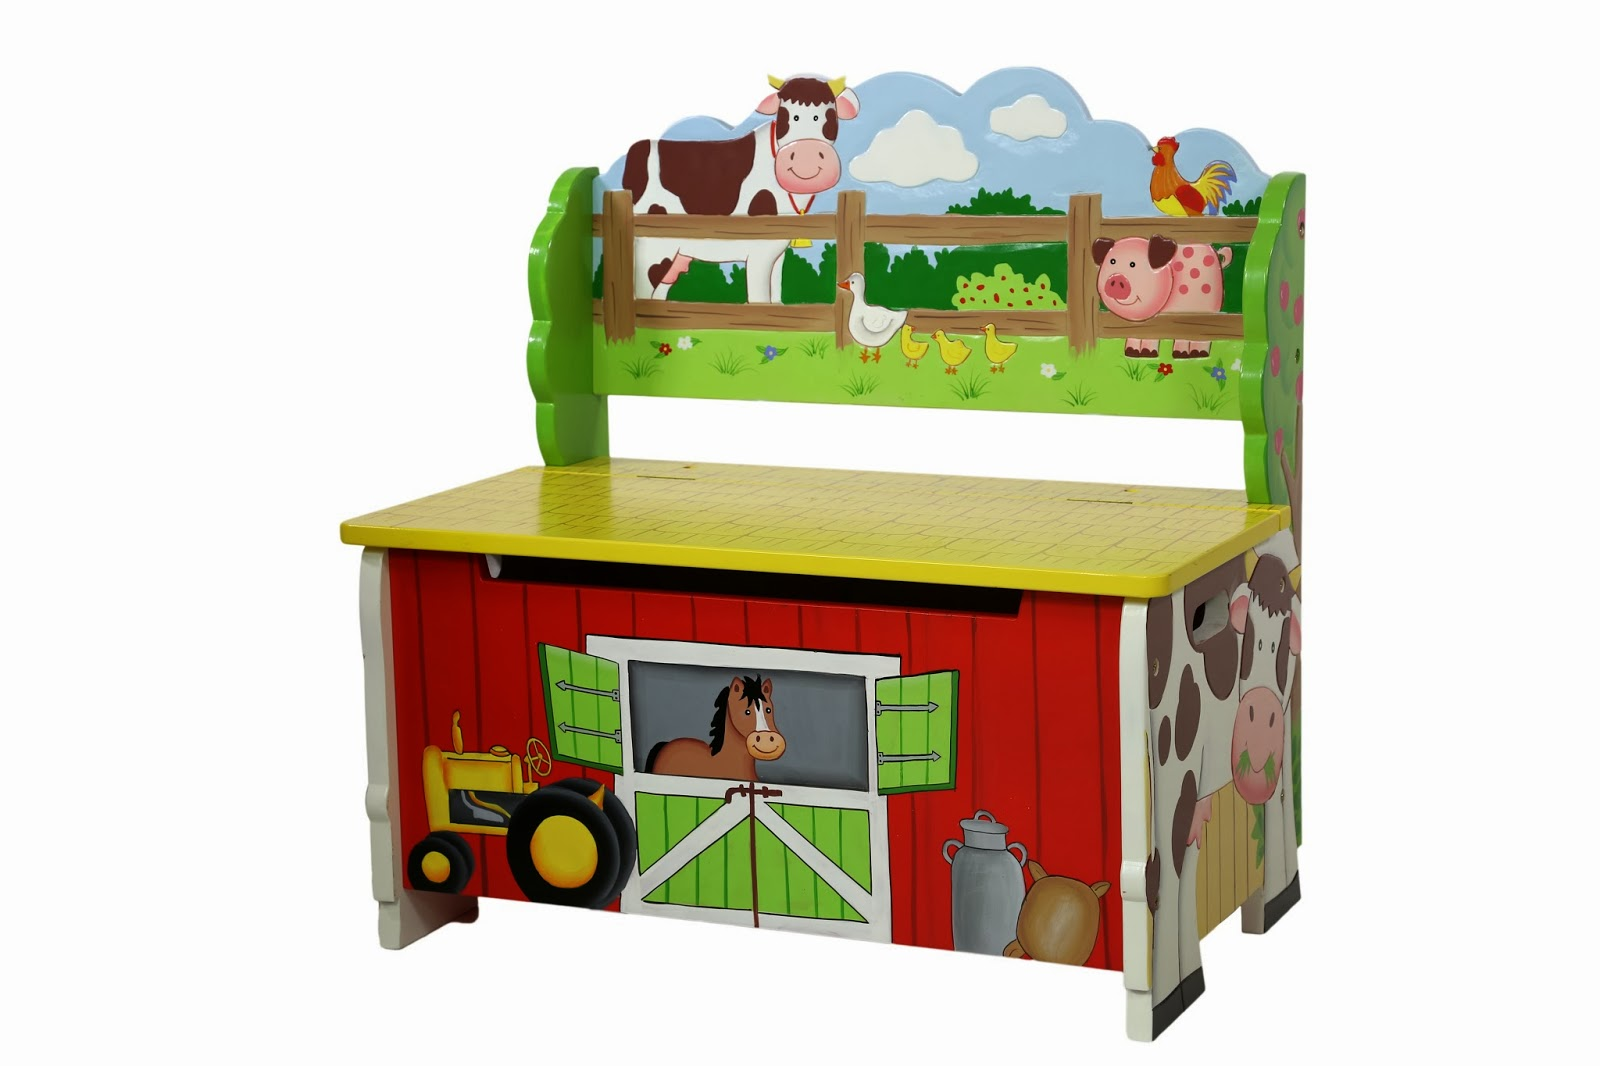 http://wooden-toys-direct.co.uk/brands/teamson.html